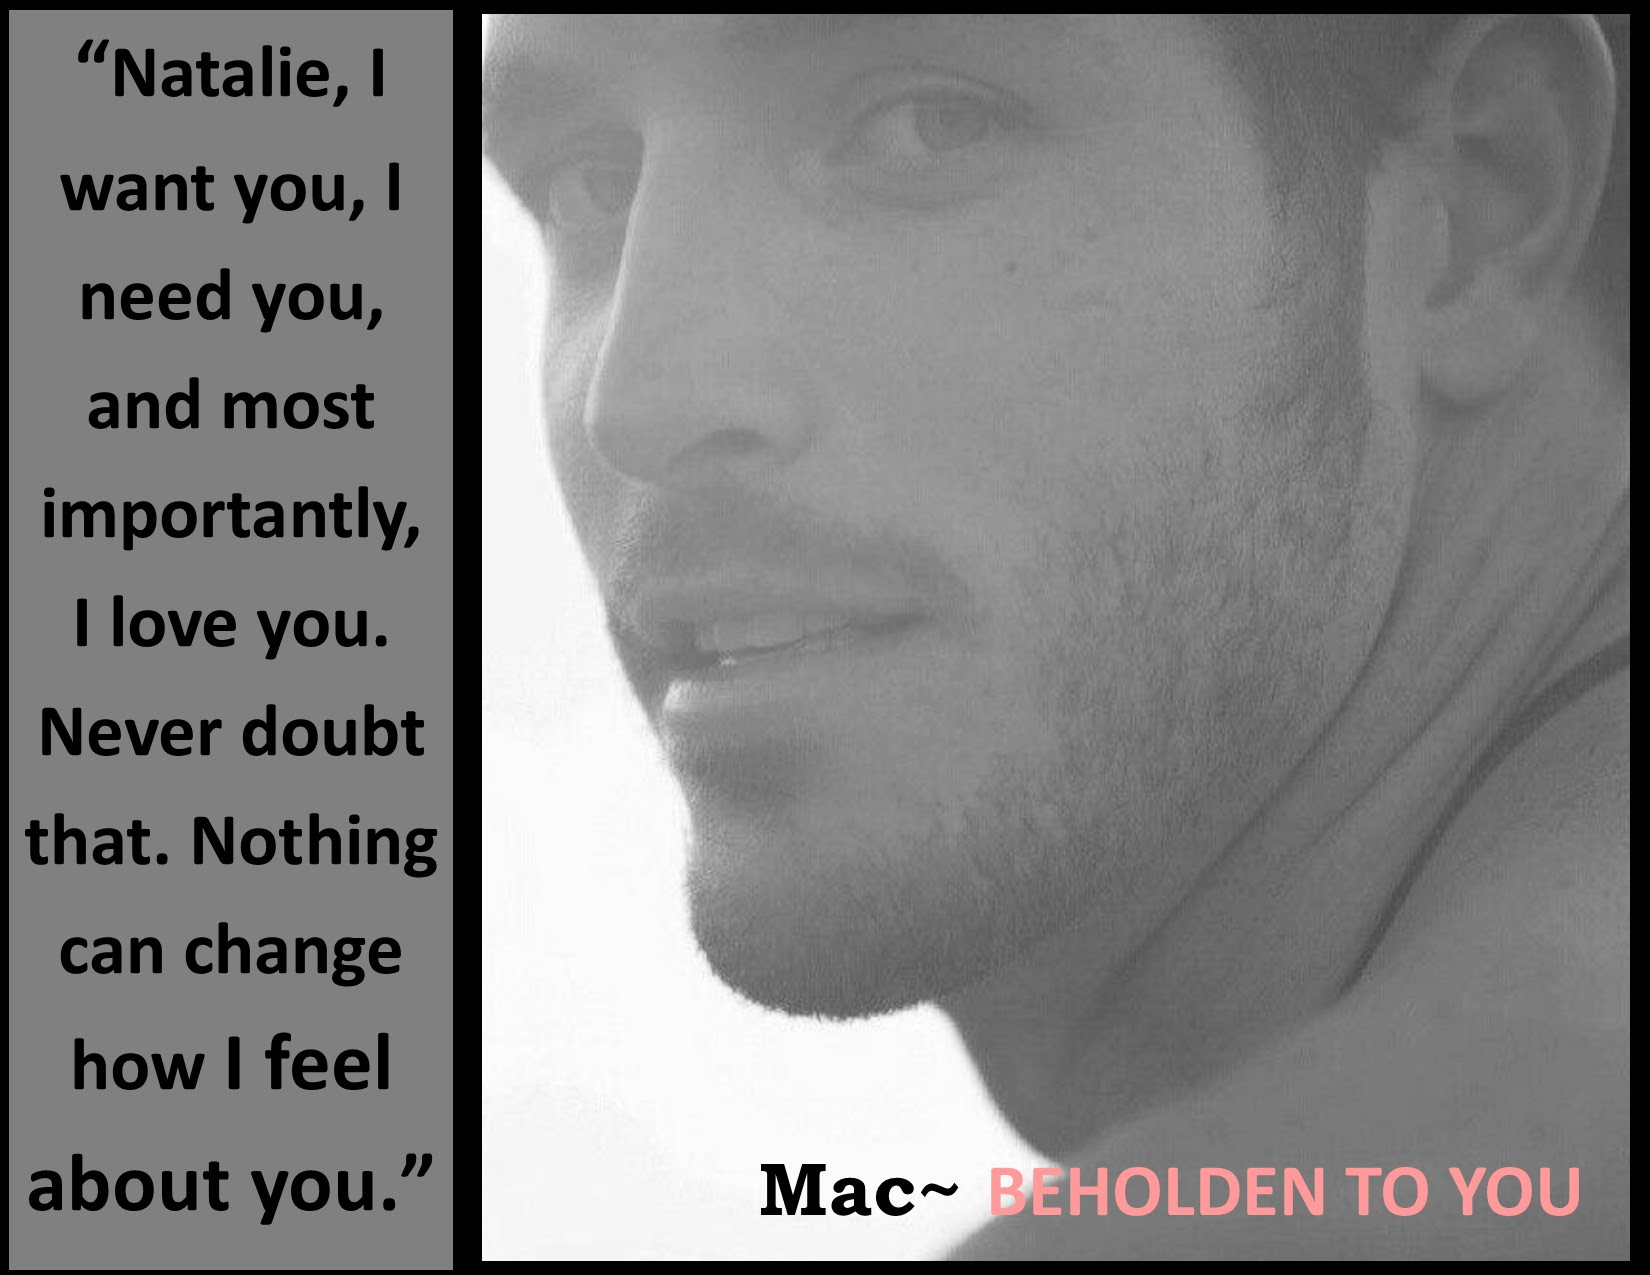 Mac proclaims love